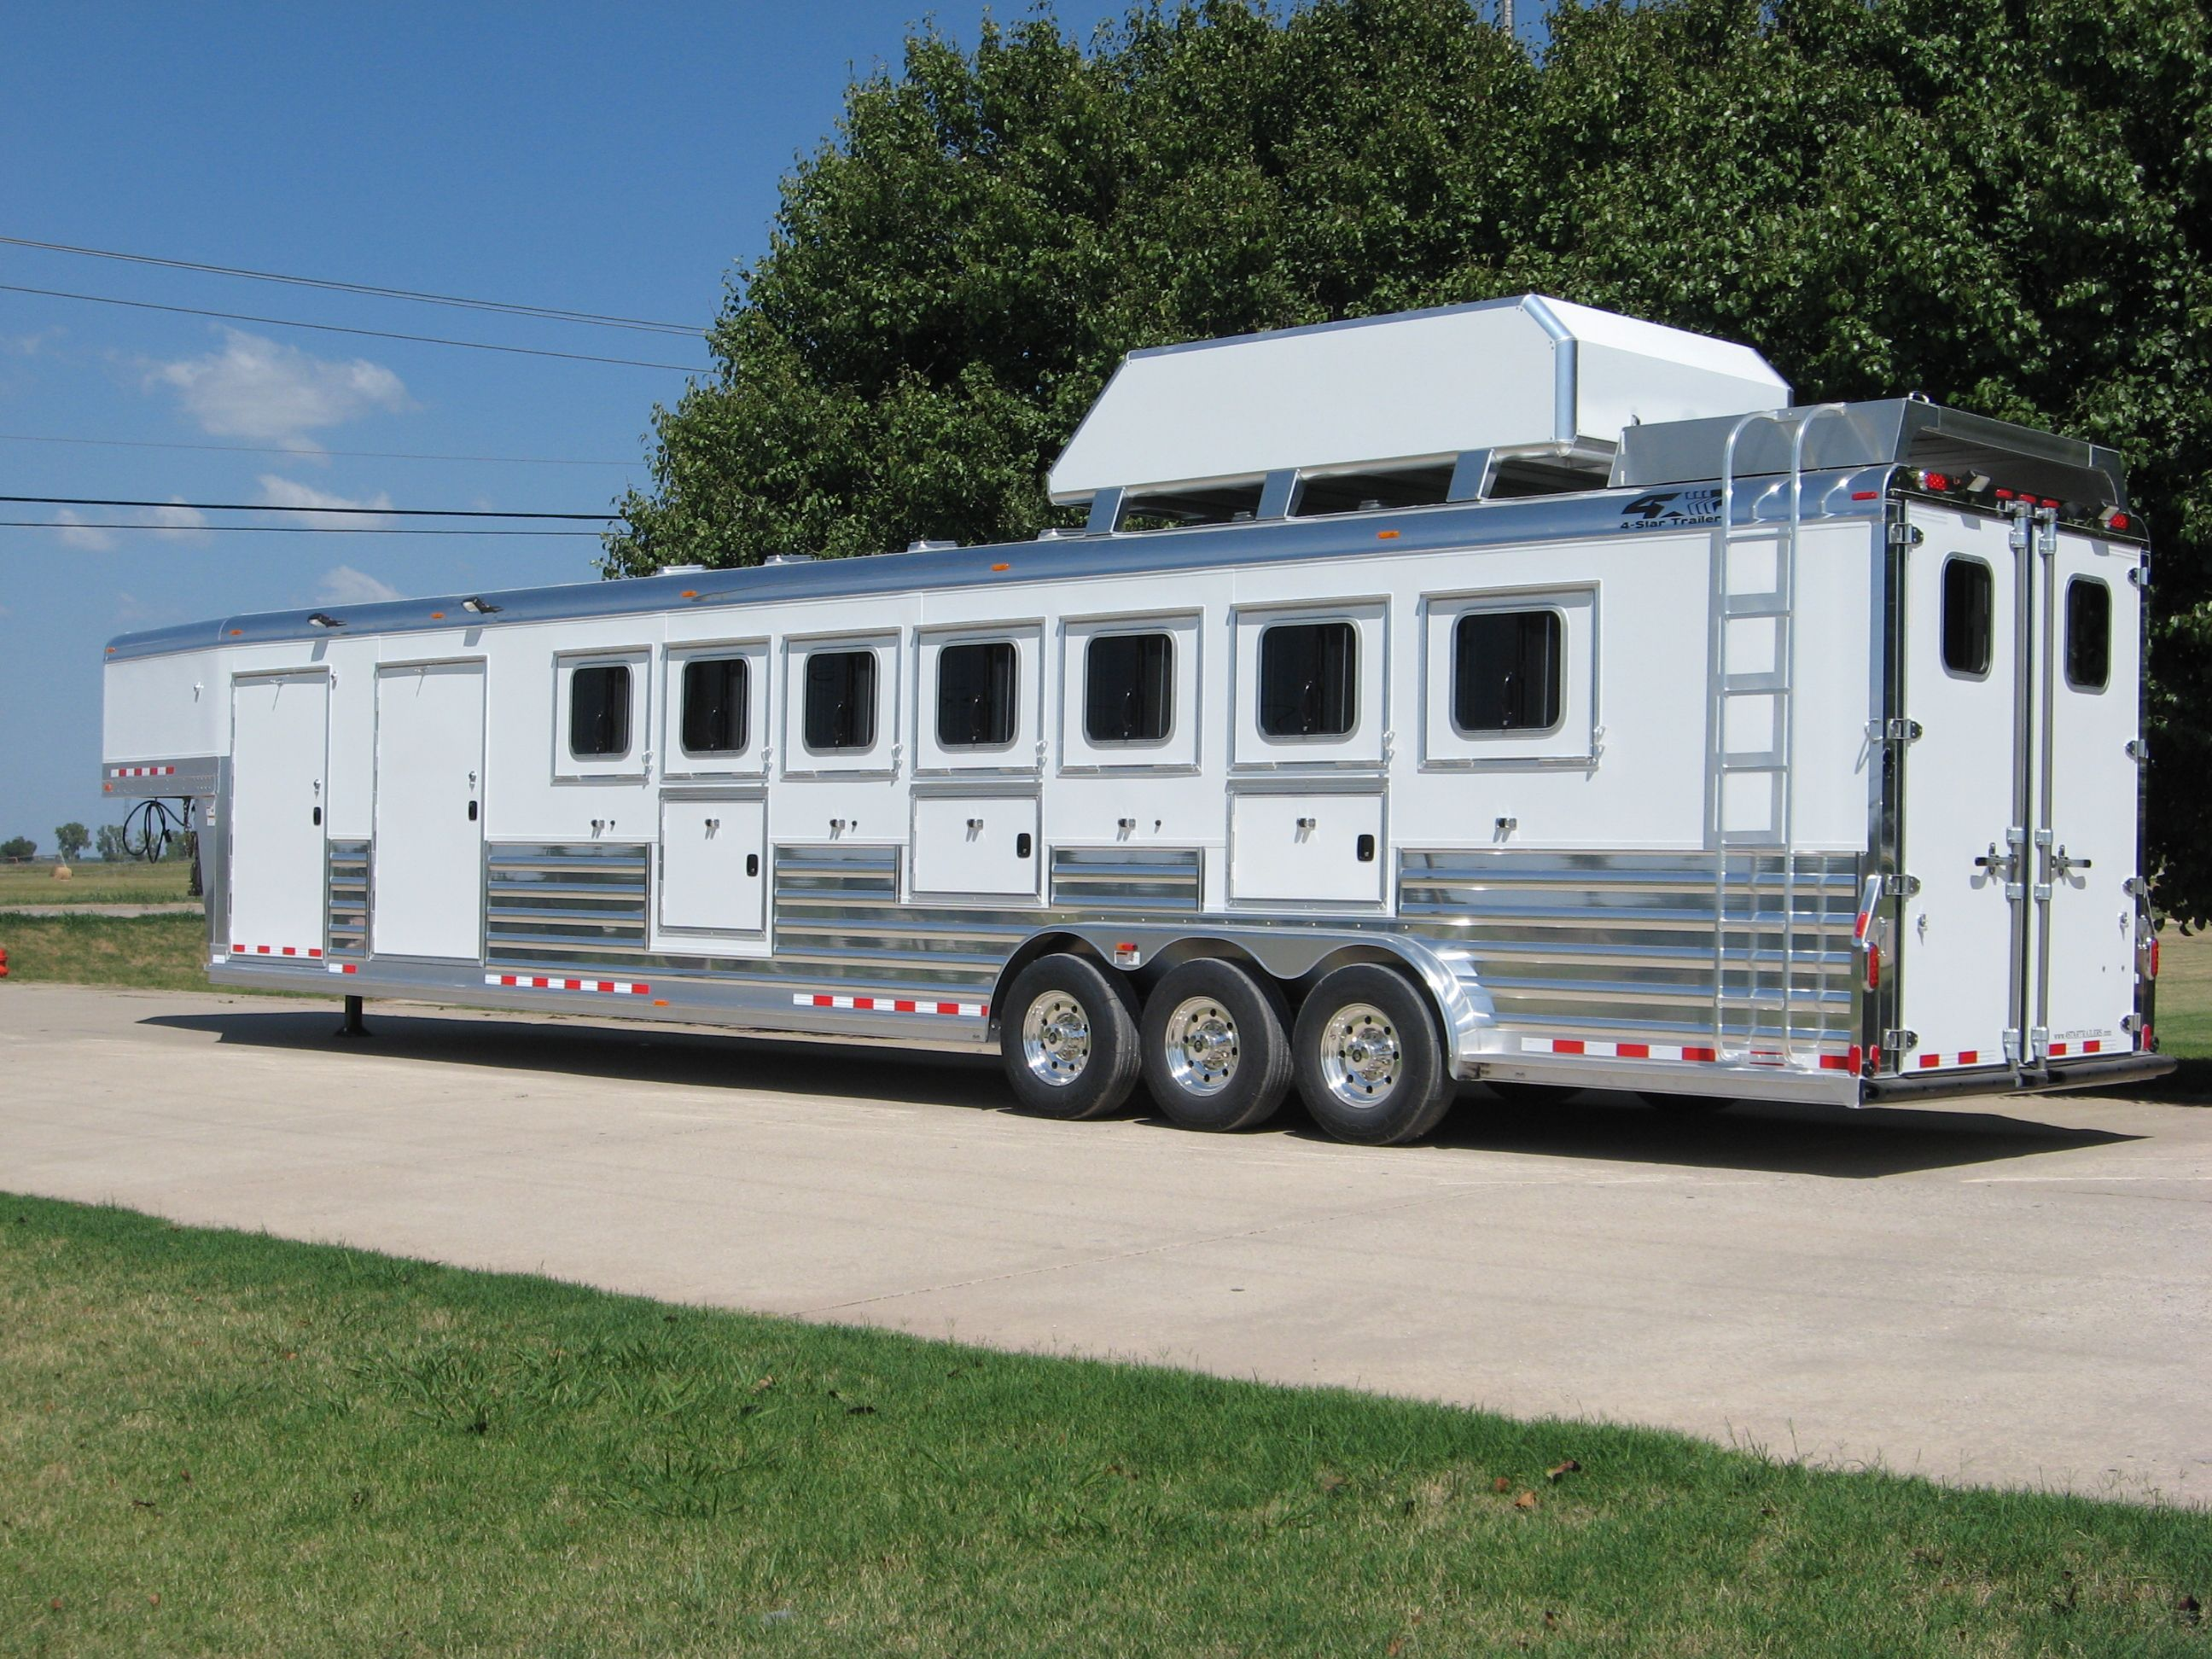 4 Star 7 Horse Slant W Polished Slats And Top Rail 800 848 3095 With Images Horse Trailers Star Trailer Livestock Trailers